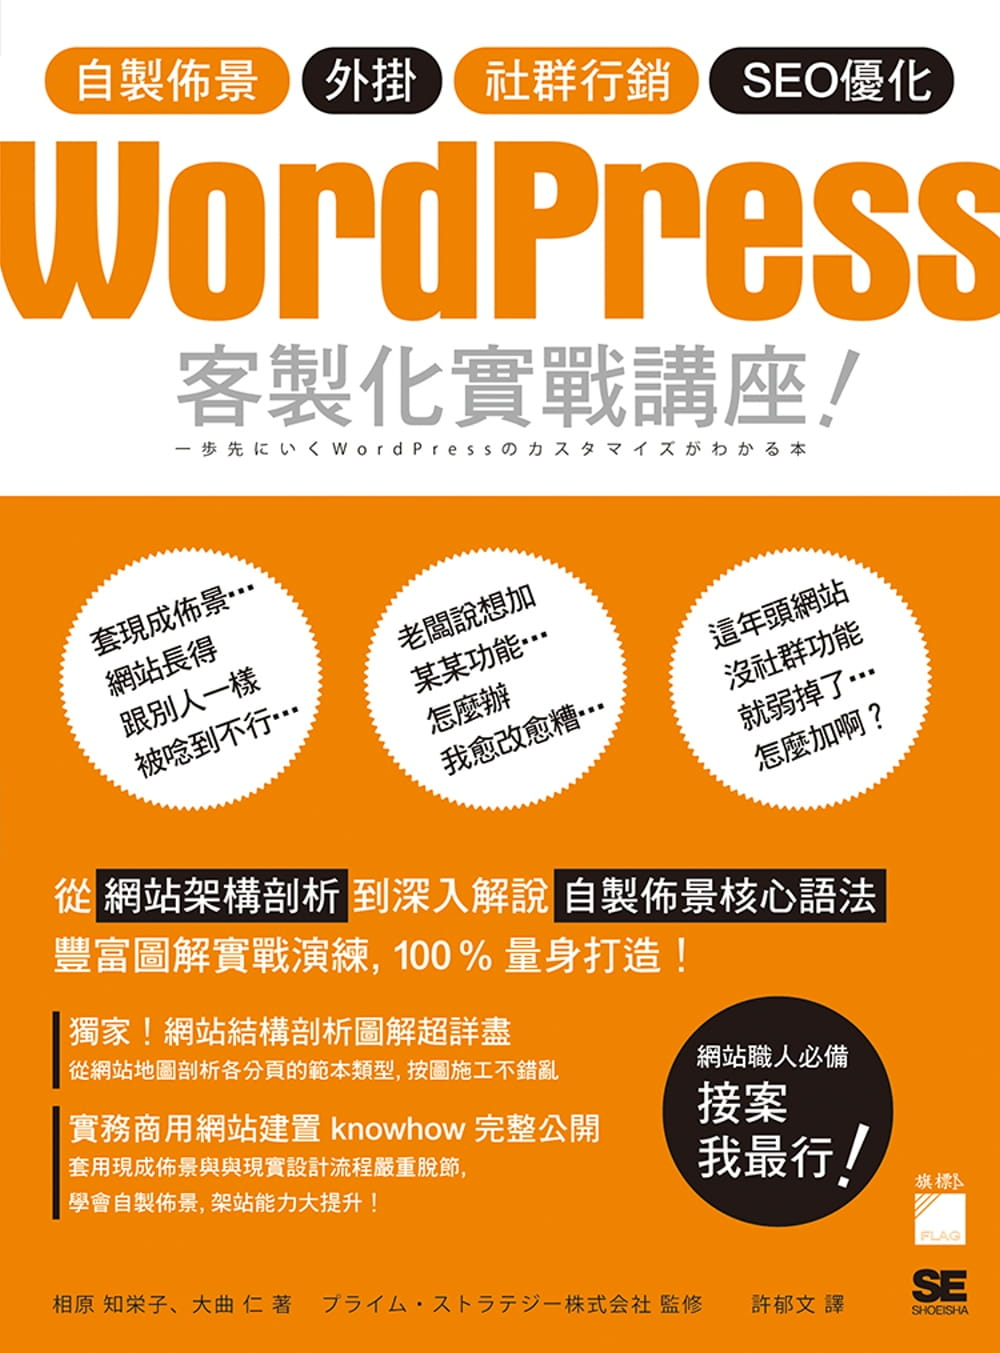 WordPress 客製化製作 書籍 推薦